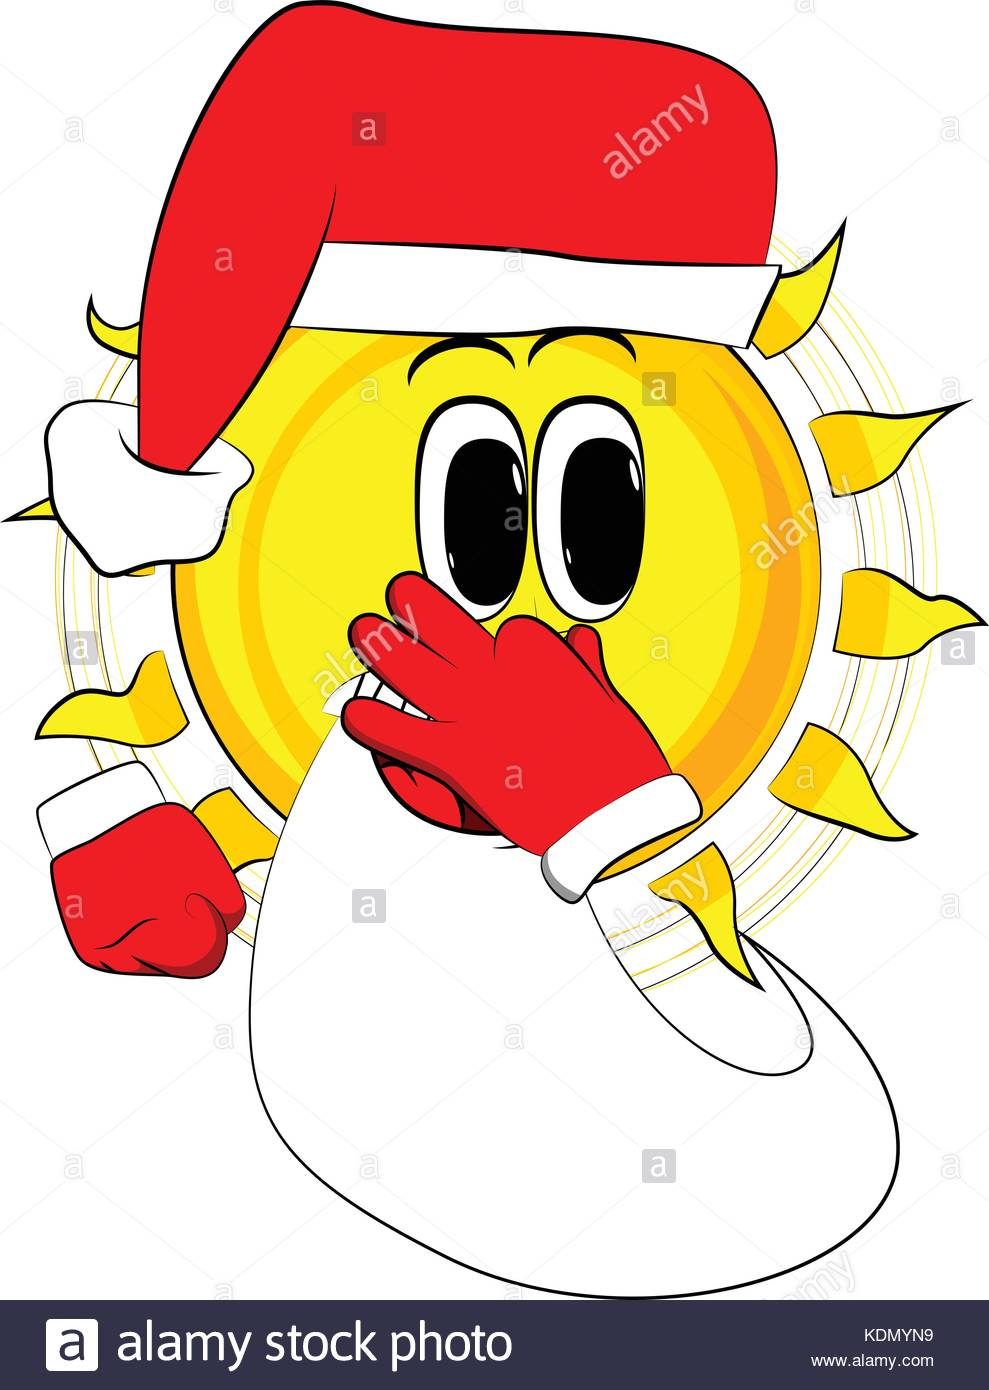 989x1390 Cartoon Sun As Santa Claus Holding His Nose Because Of A Bad Smell